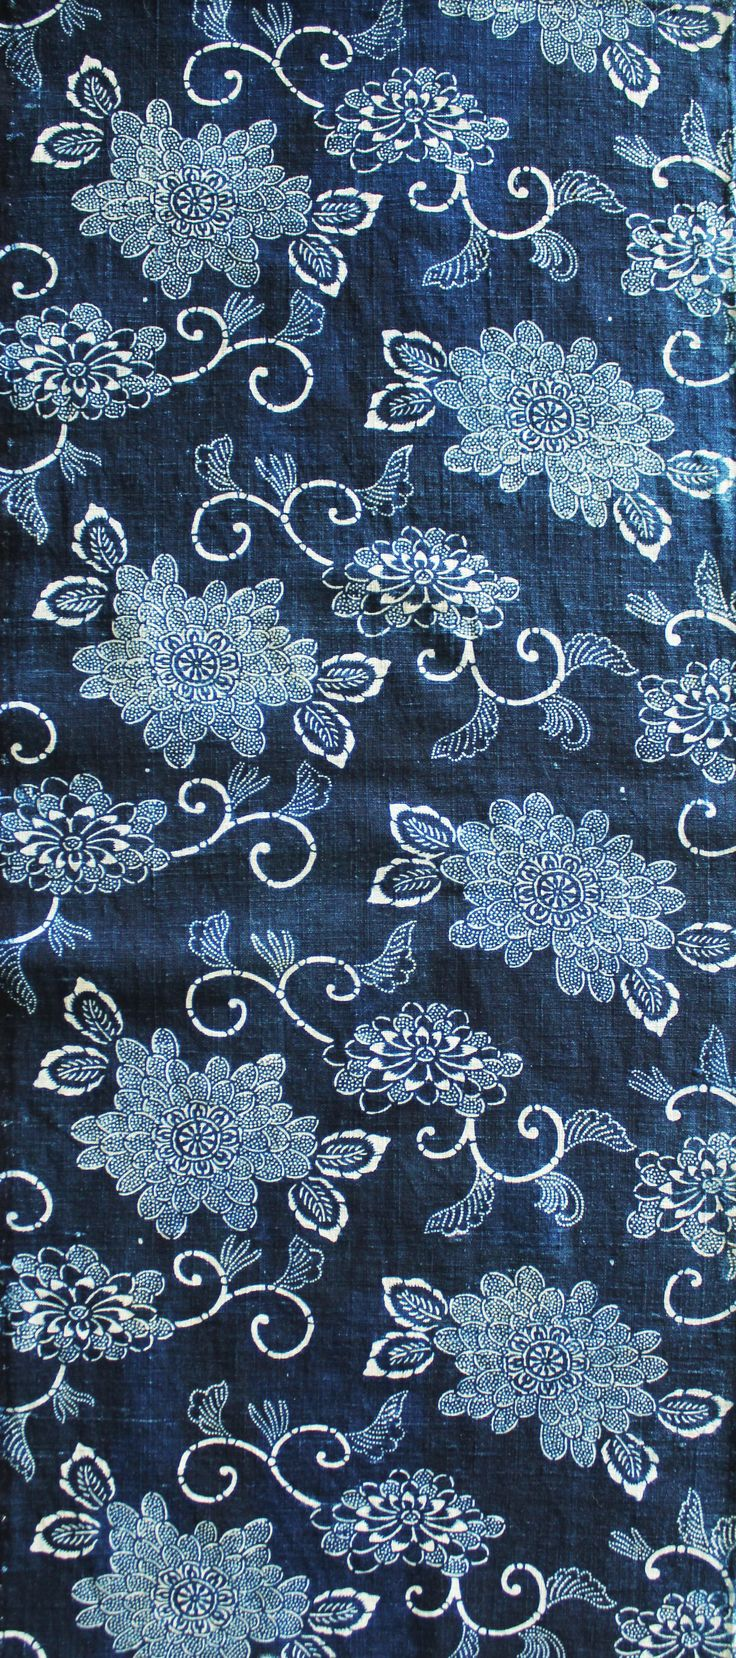 加賀のお国染 花岡コレクションより Japanese traditional indigo dyeing  by Hanaoka collection